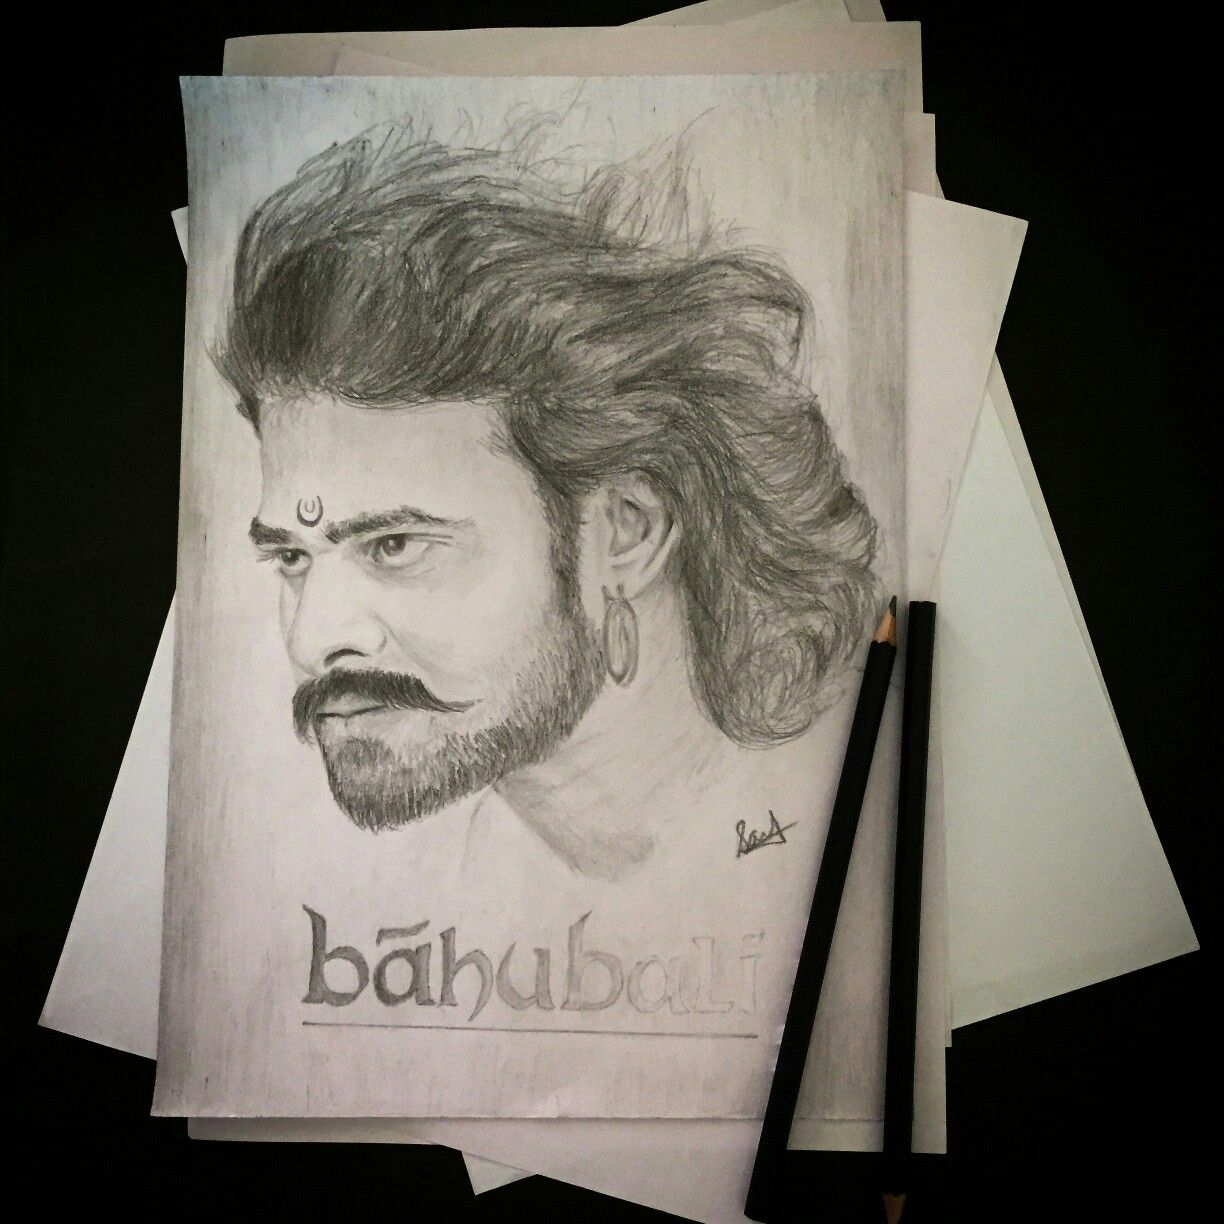 Bahubali sketch drawing prabhas sketch pencil work follow for more on instagram ekskwizitart